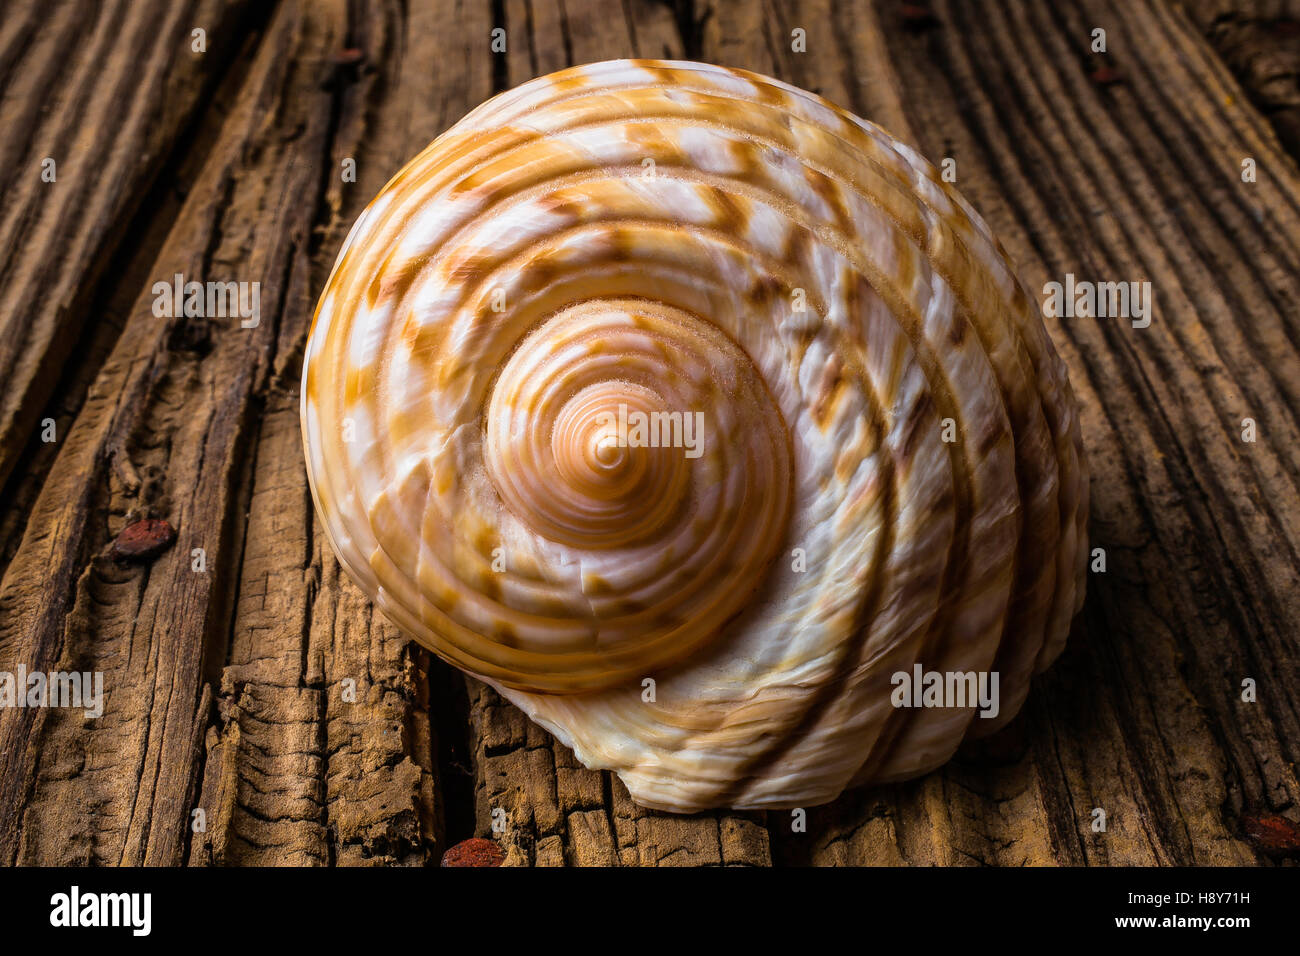 Sea Shell Study In Brown Tones - Stock Image